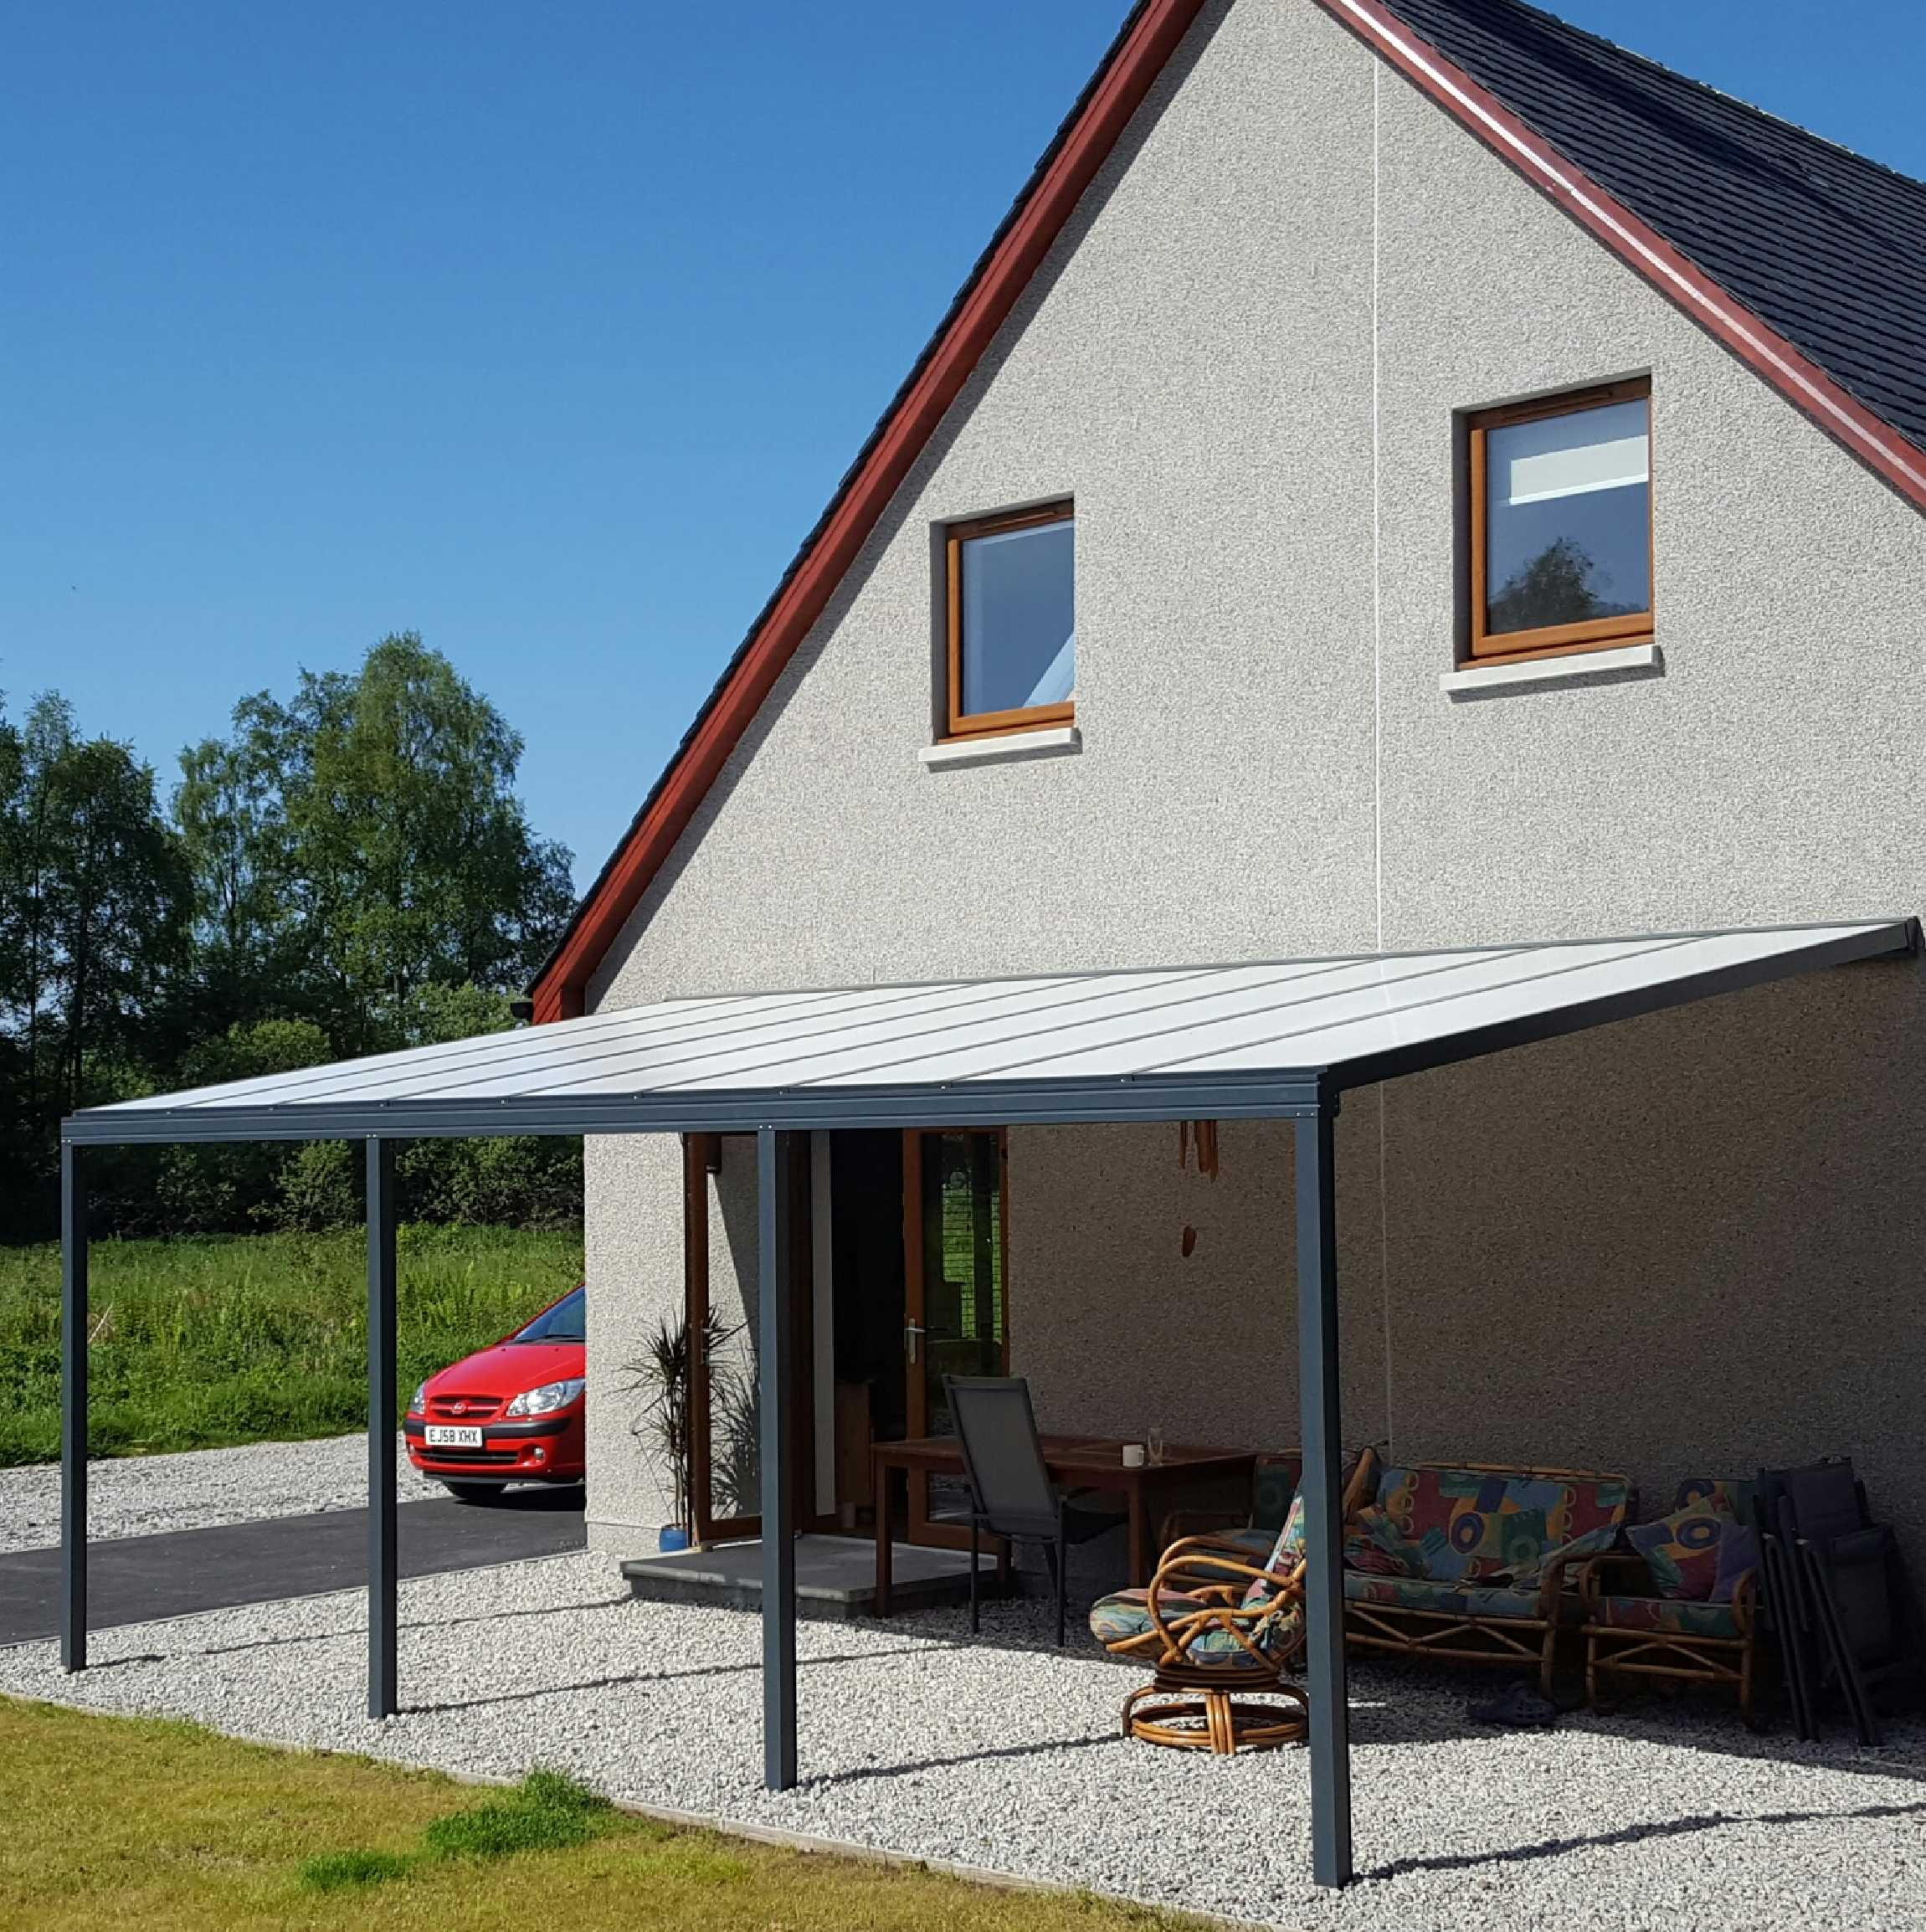 Great selection of Omega Smart Lean-To Canopy, Anthracite Grey, 16mm Polycarbonate Glazing - 8.4m (W) x 1.5m (P), (4) Supporting Posts